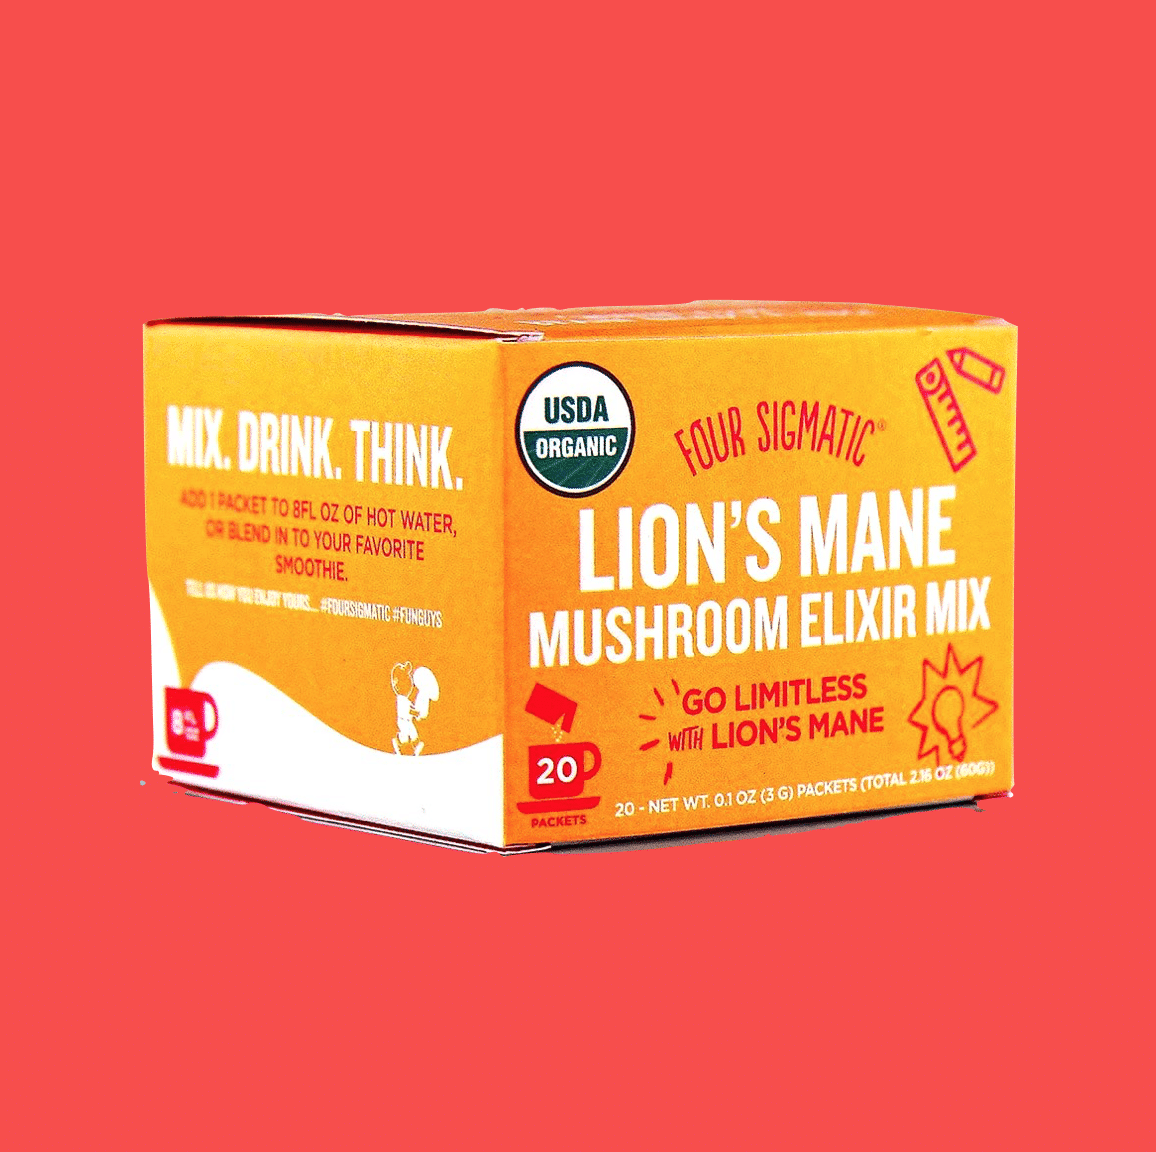 Four Sigmatic Lion's mane mushroom nootropics certified paleo organic natural